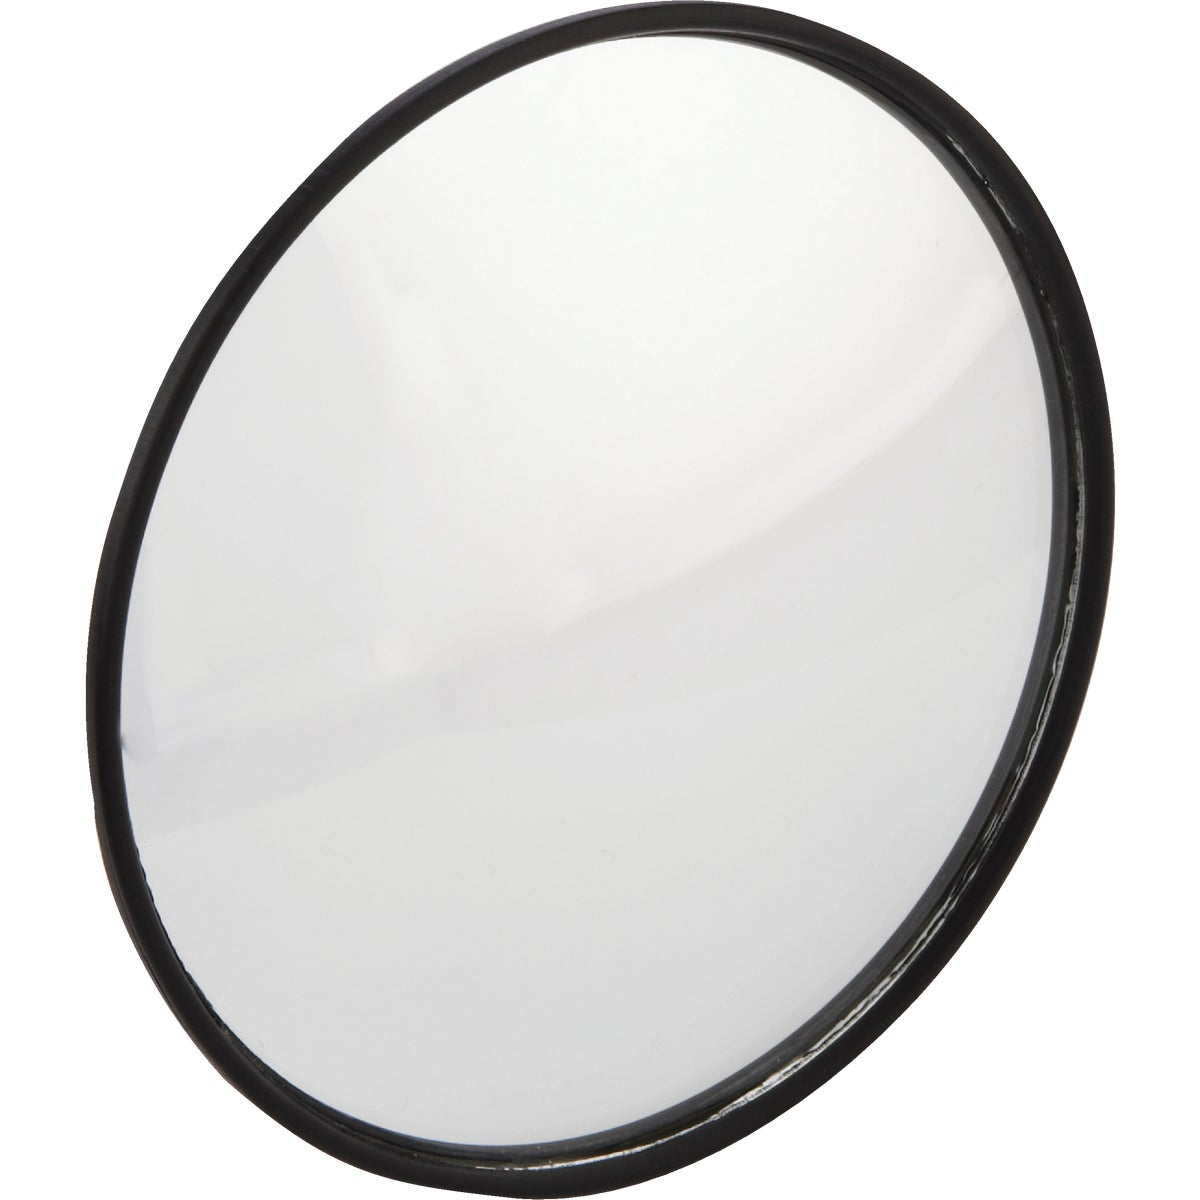 "2""WIDE ANGLE SPOT MIRROR"